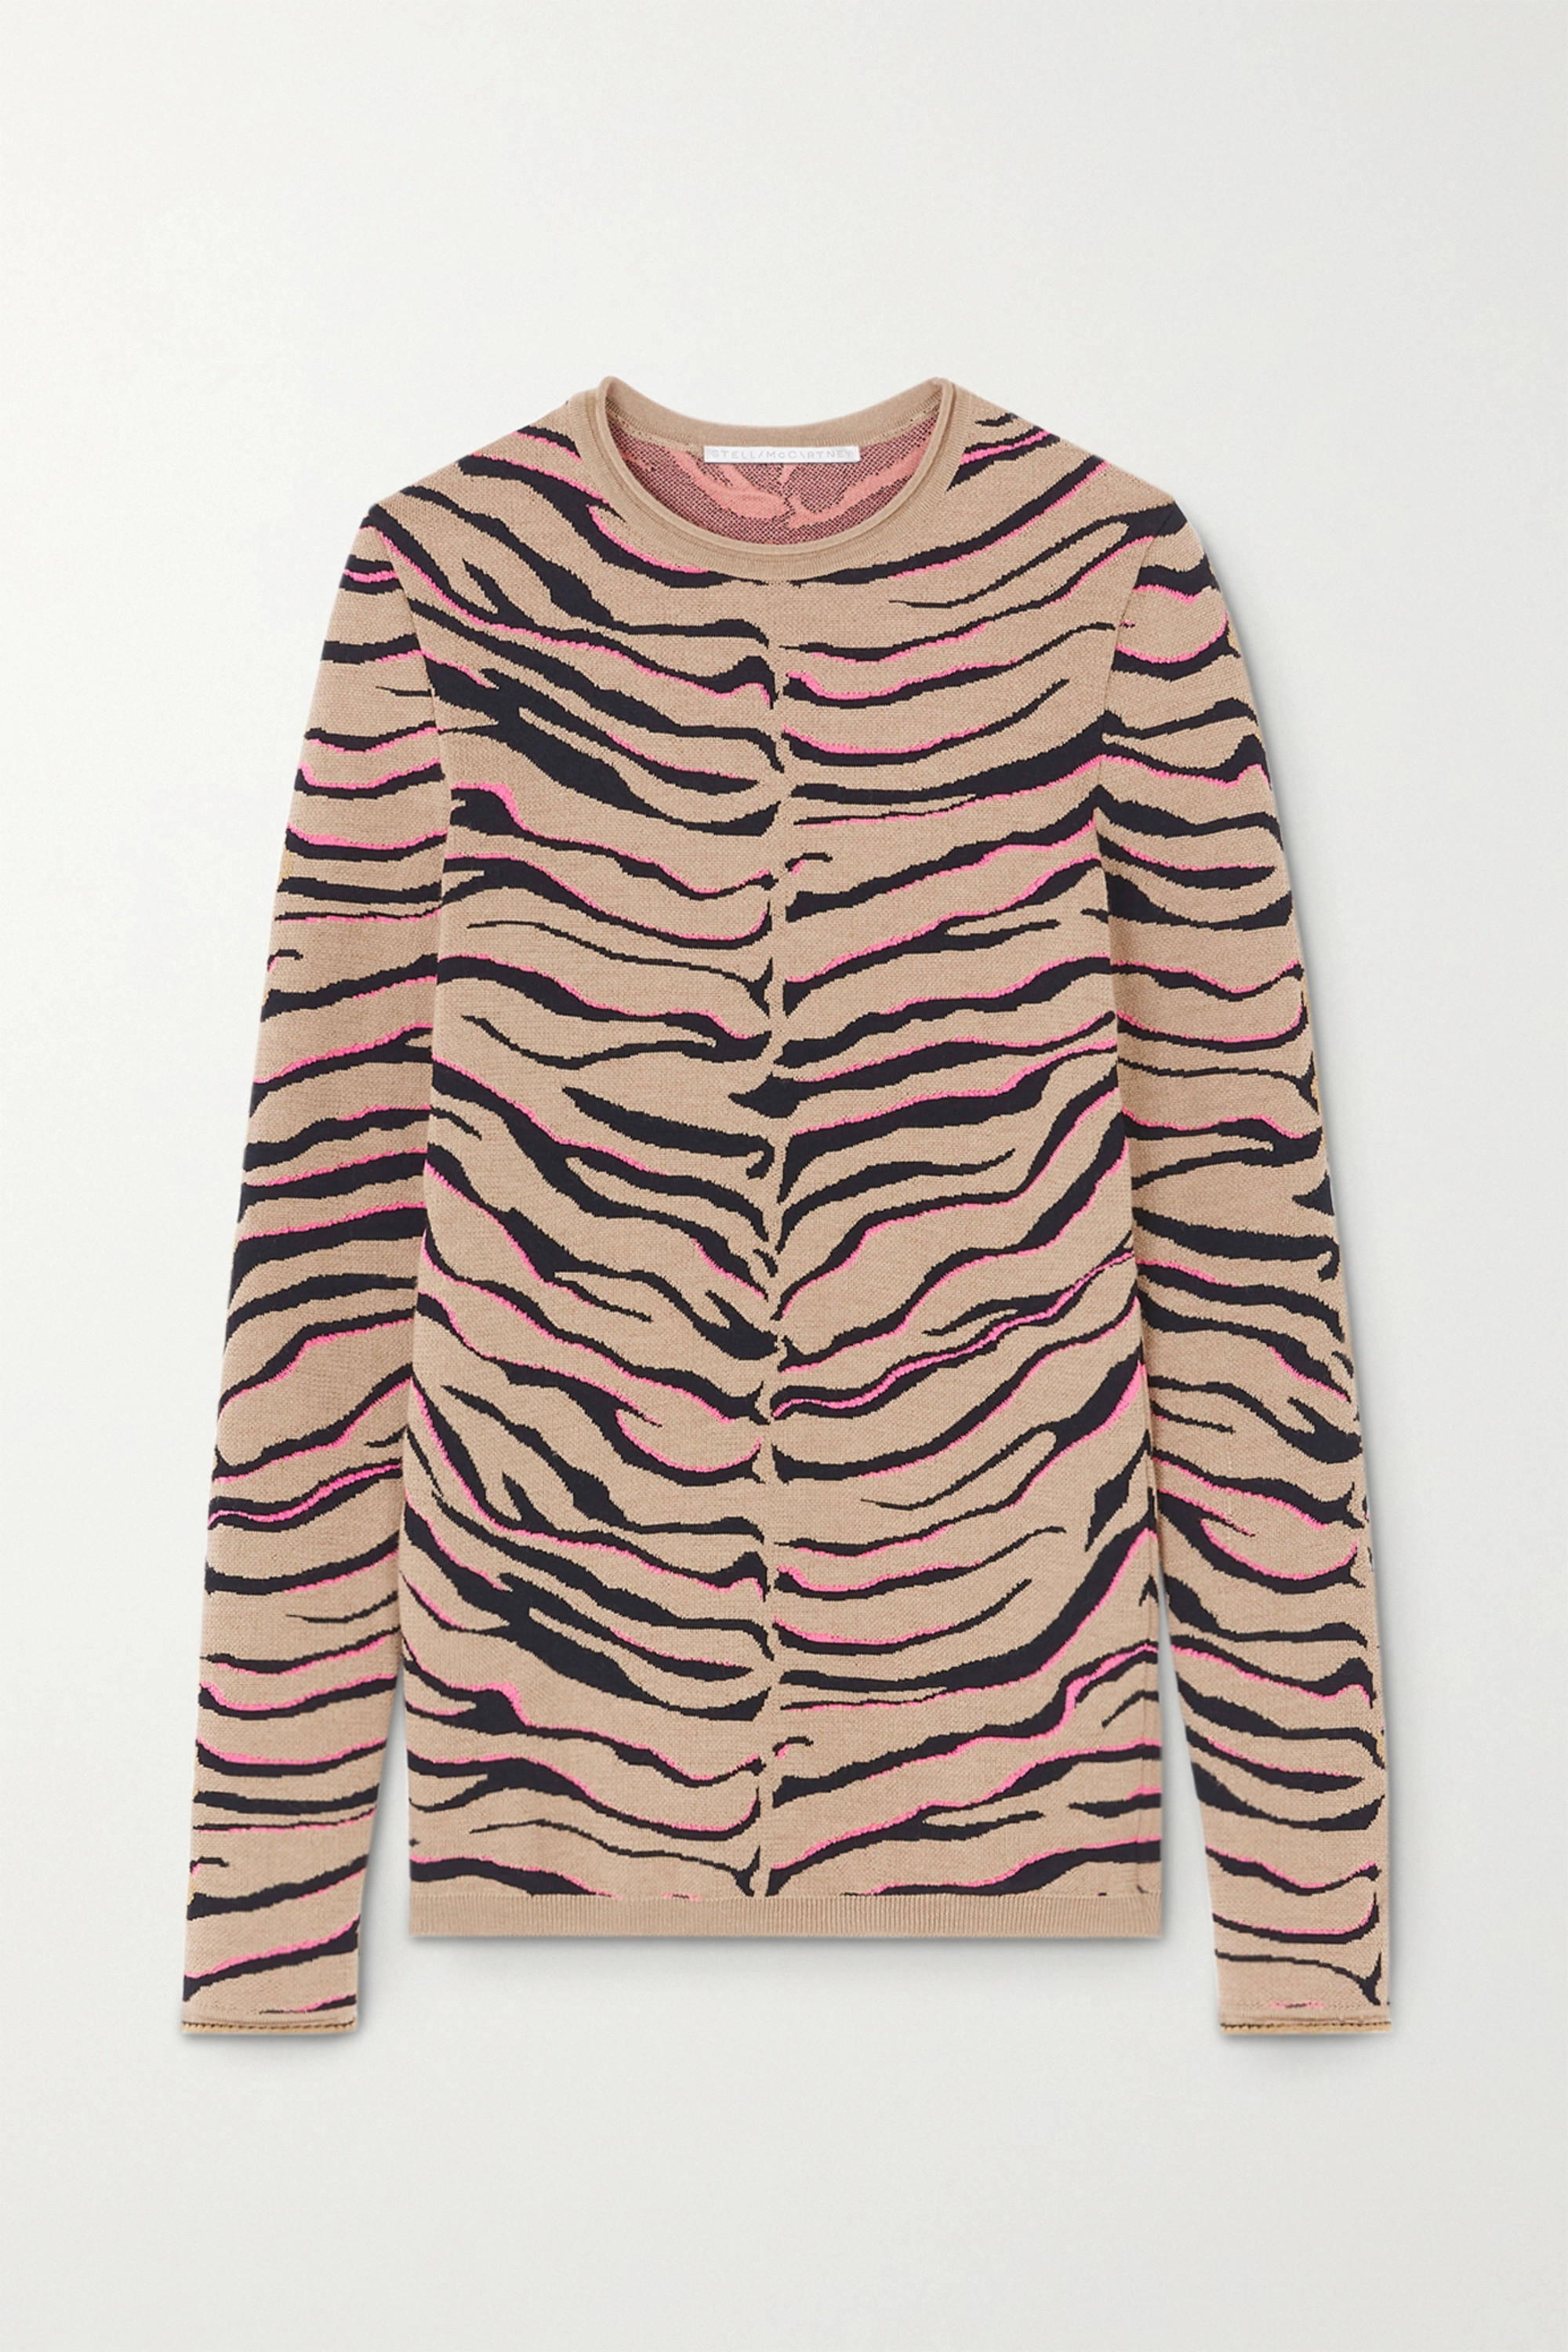 Stella McCartney Jacquard-knit wool-blend sweater